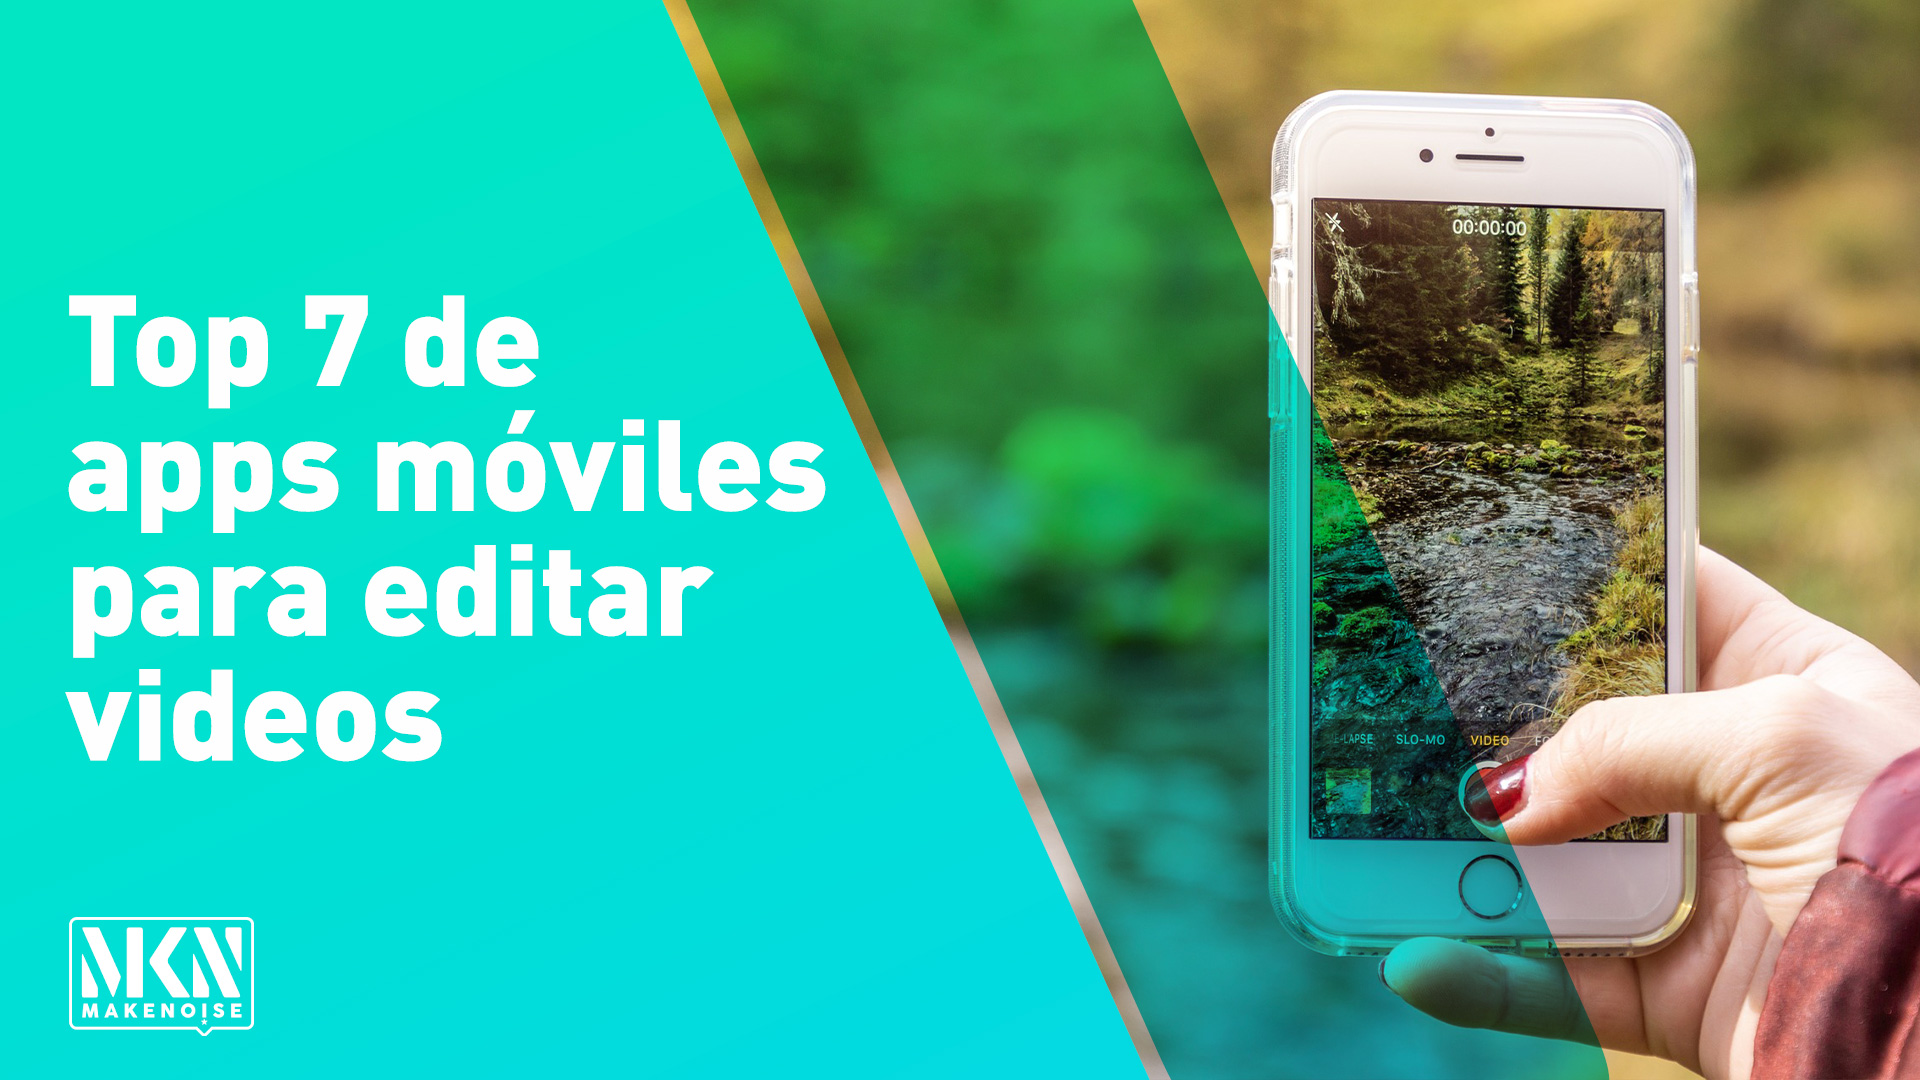 Top 7 de apps móviles para editar videos